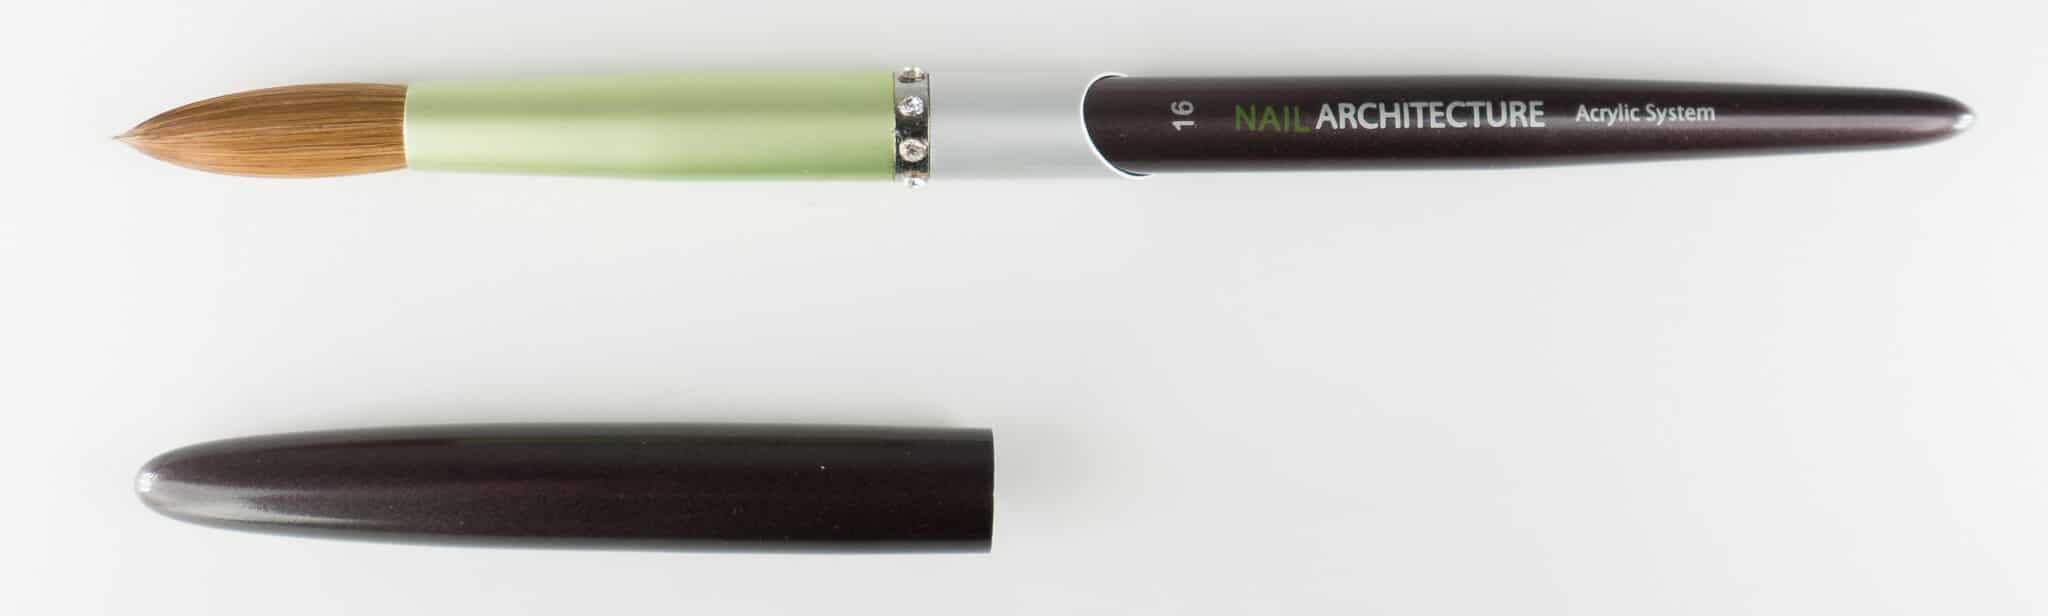 Nail Architecture size 16 pencil brush with cap next to it